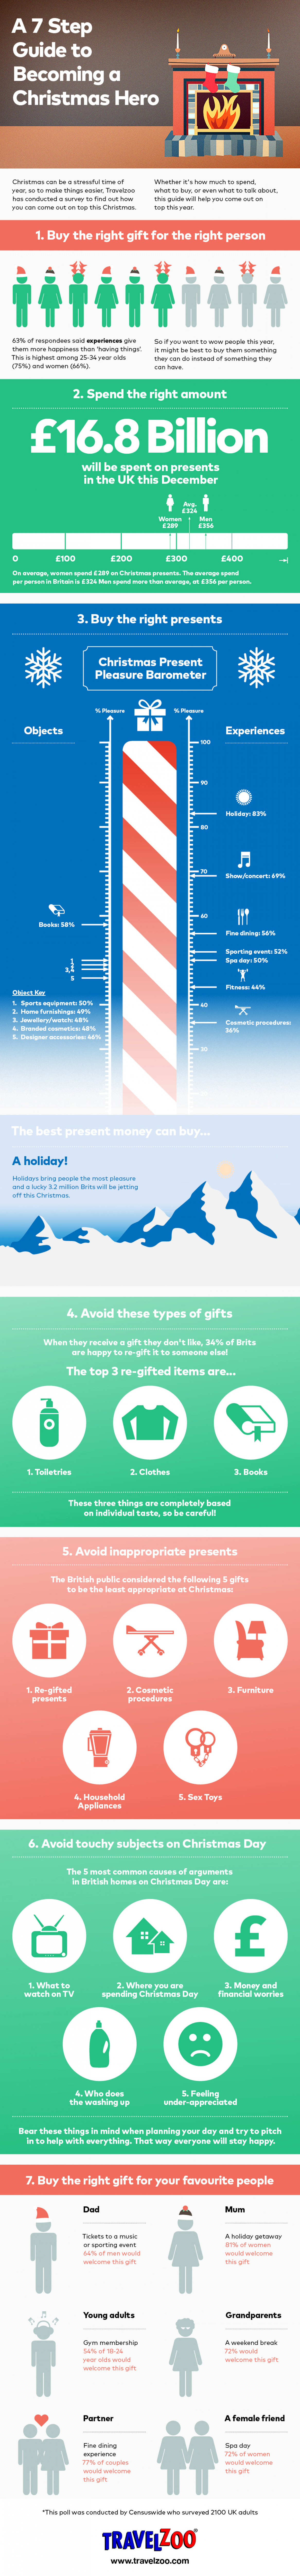 7 Ways You Can Become a Christmas Hero this Year Infographic